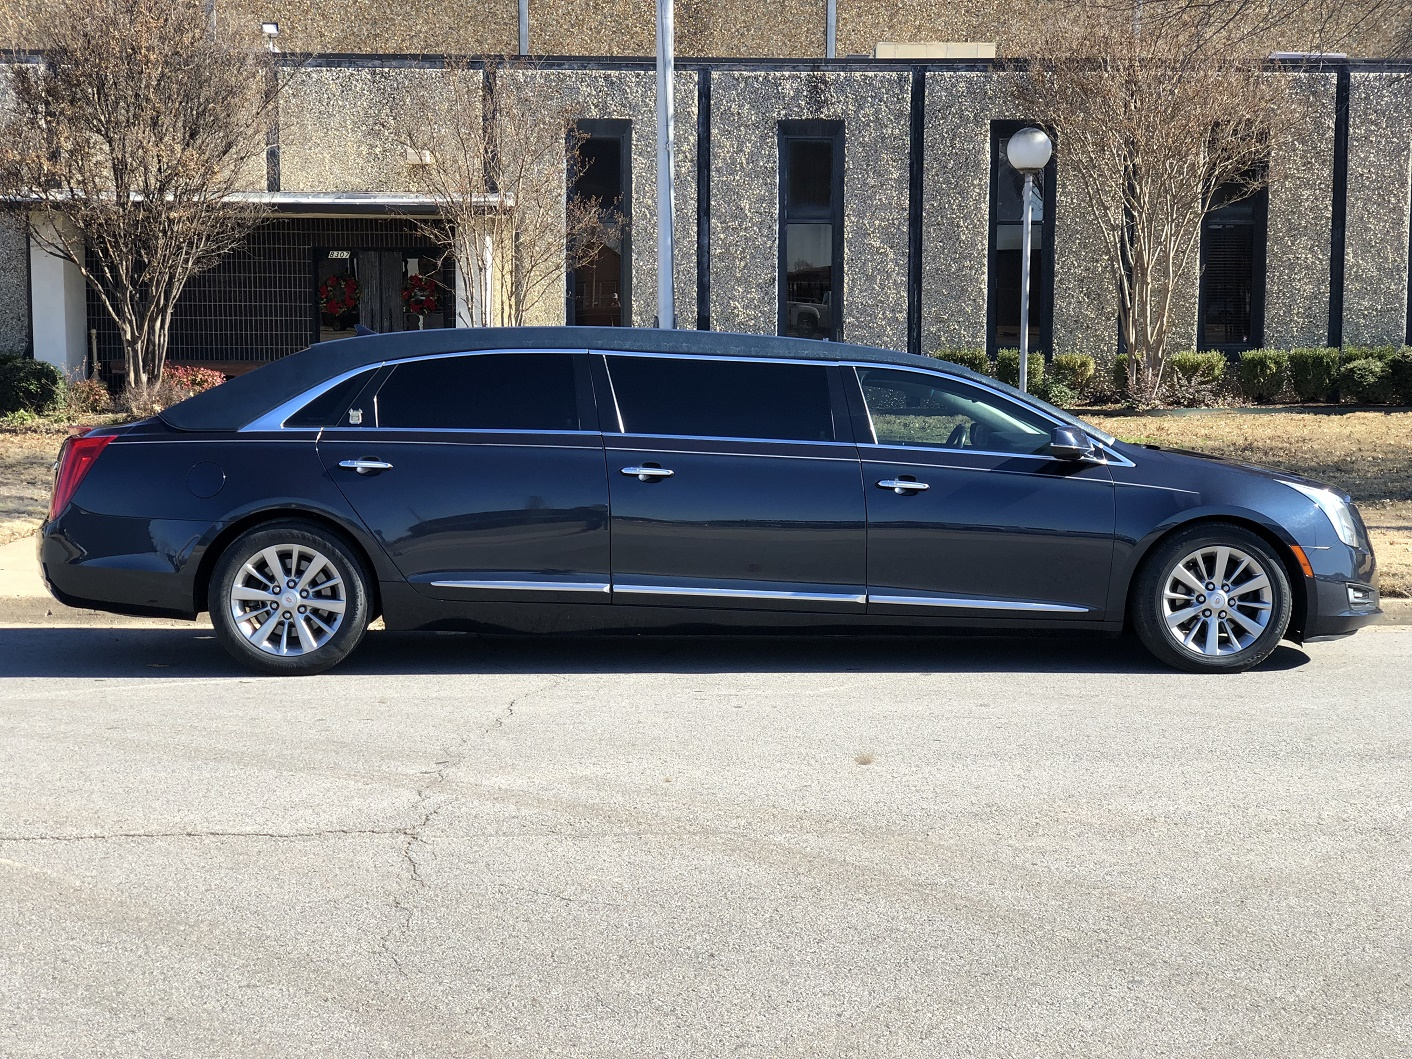 2013 Blue Cadillac Armbruster Stageway Six Door Funeral Limousine 4